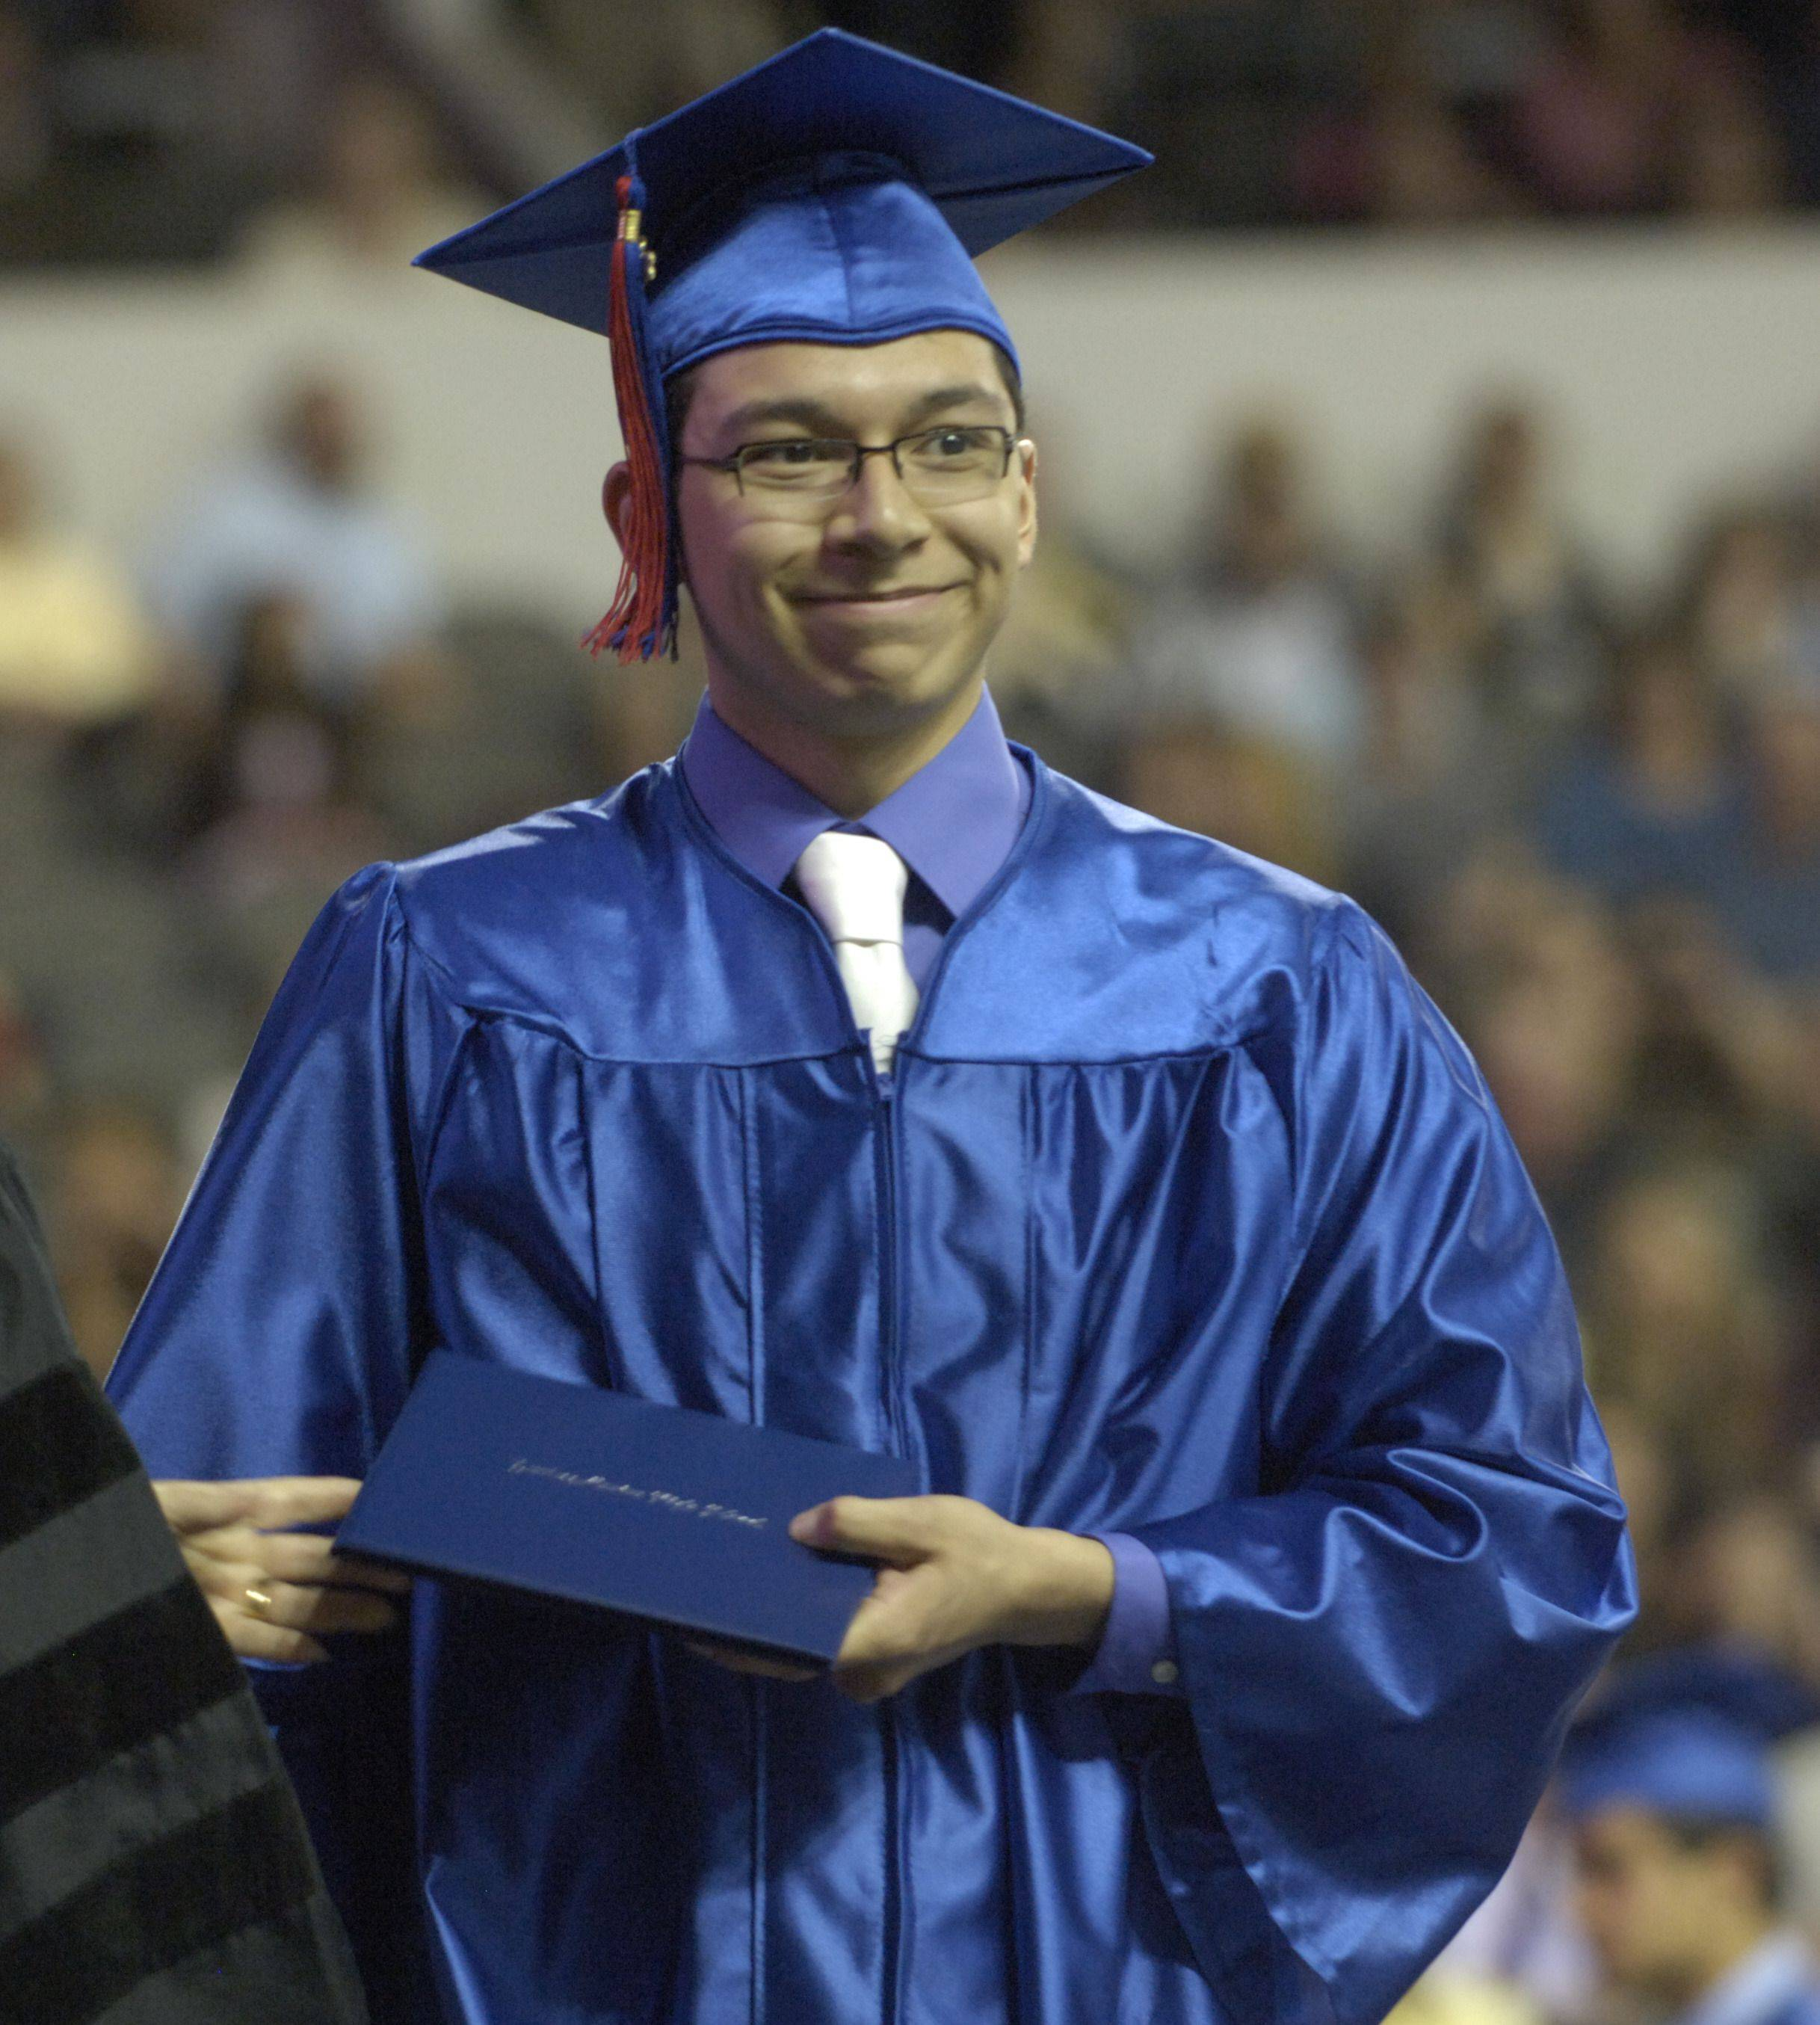 Images from the Dundee-Crown High School commencement ceremony at the Sears Centre Saturday, May 21, 2011.